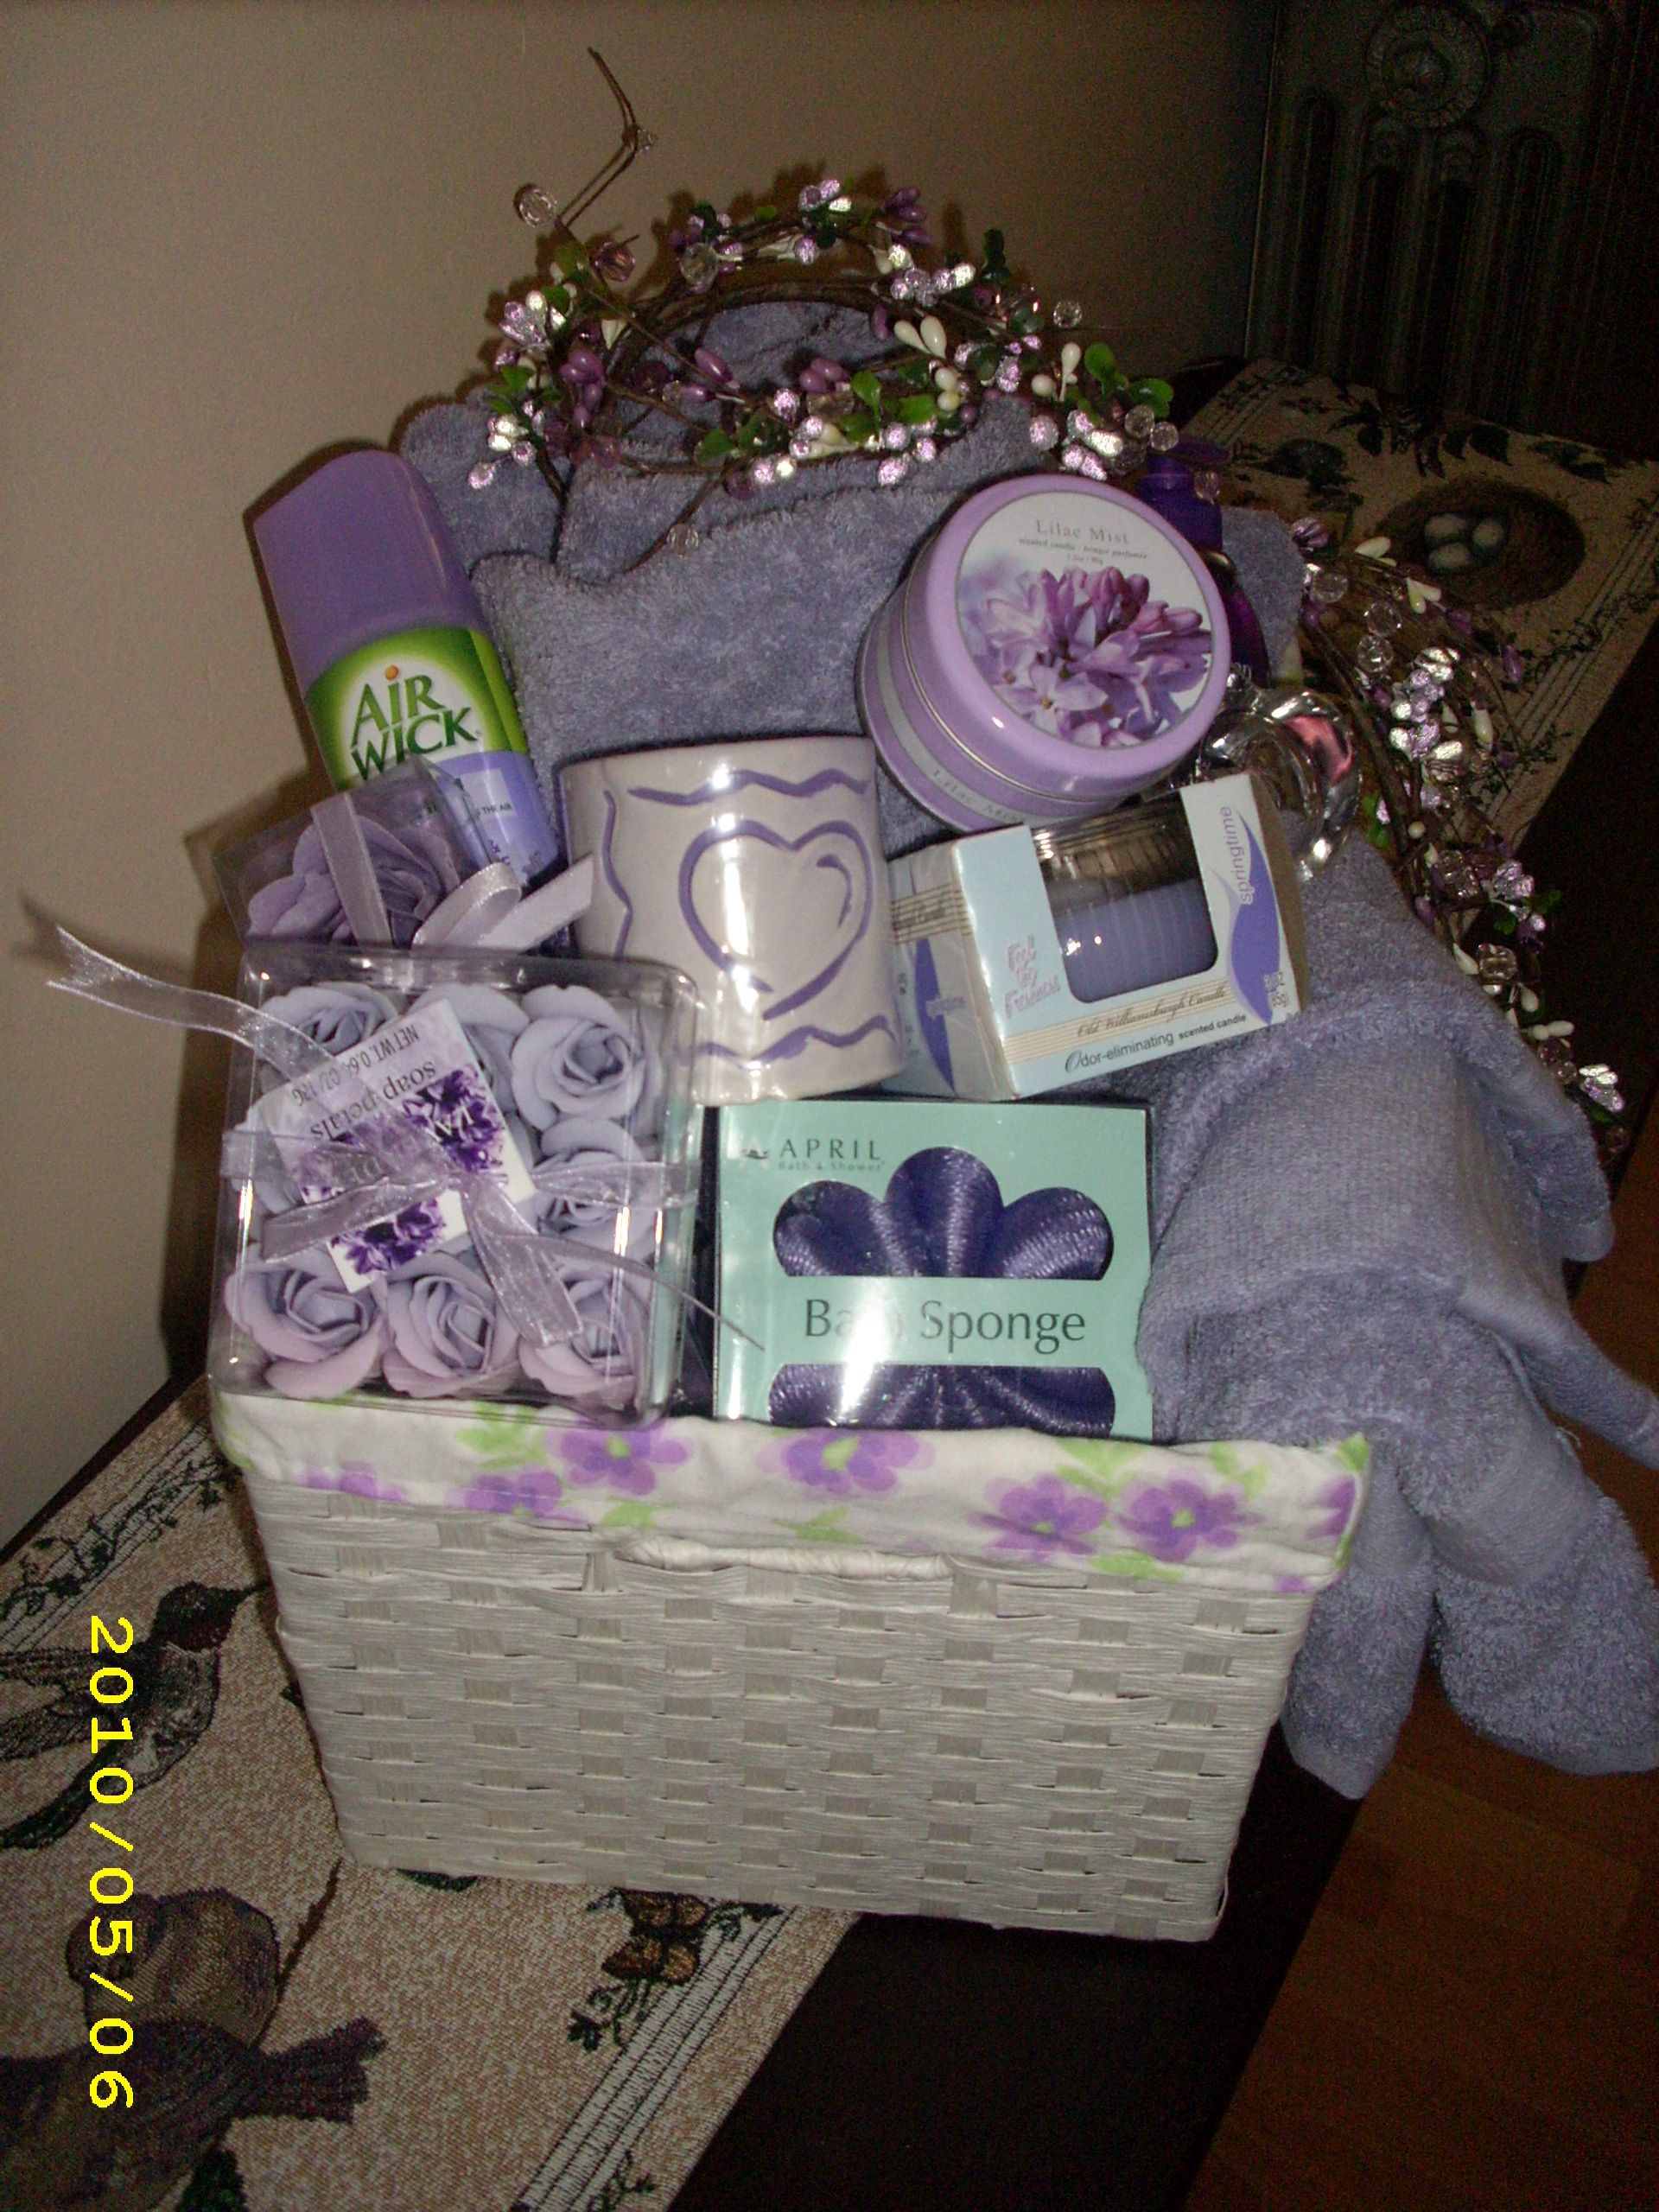 Wedding Shower Gift Basket Ideas : Bridal Shower Basket Bathroom Themed DIY Gift Ideas Pinterest